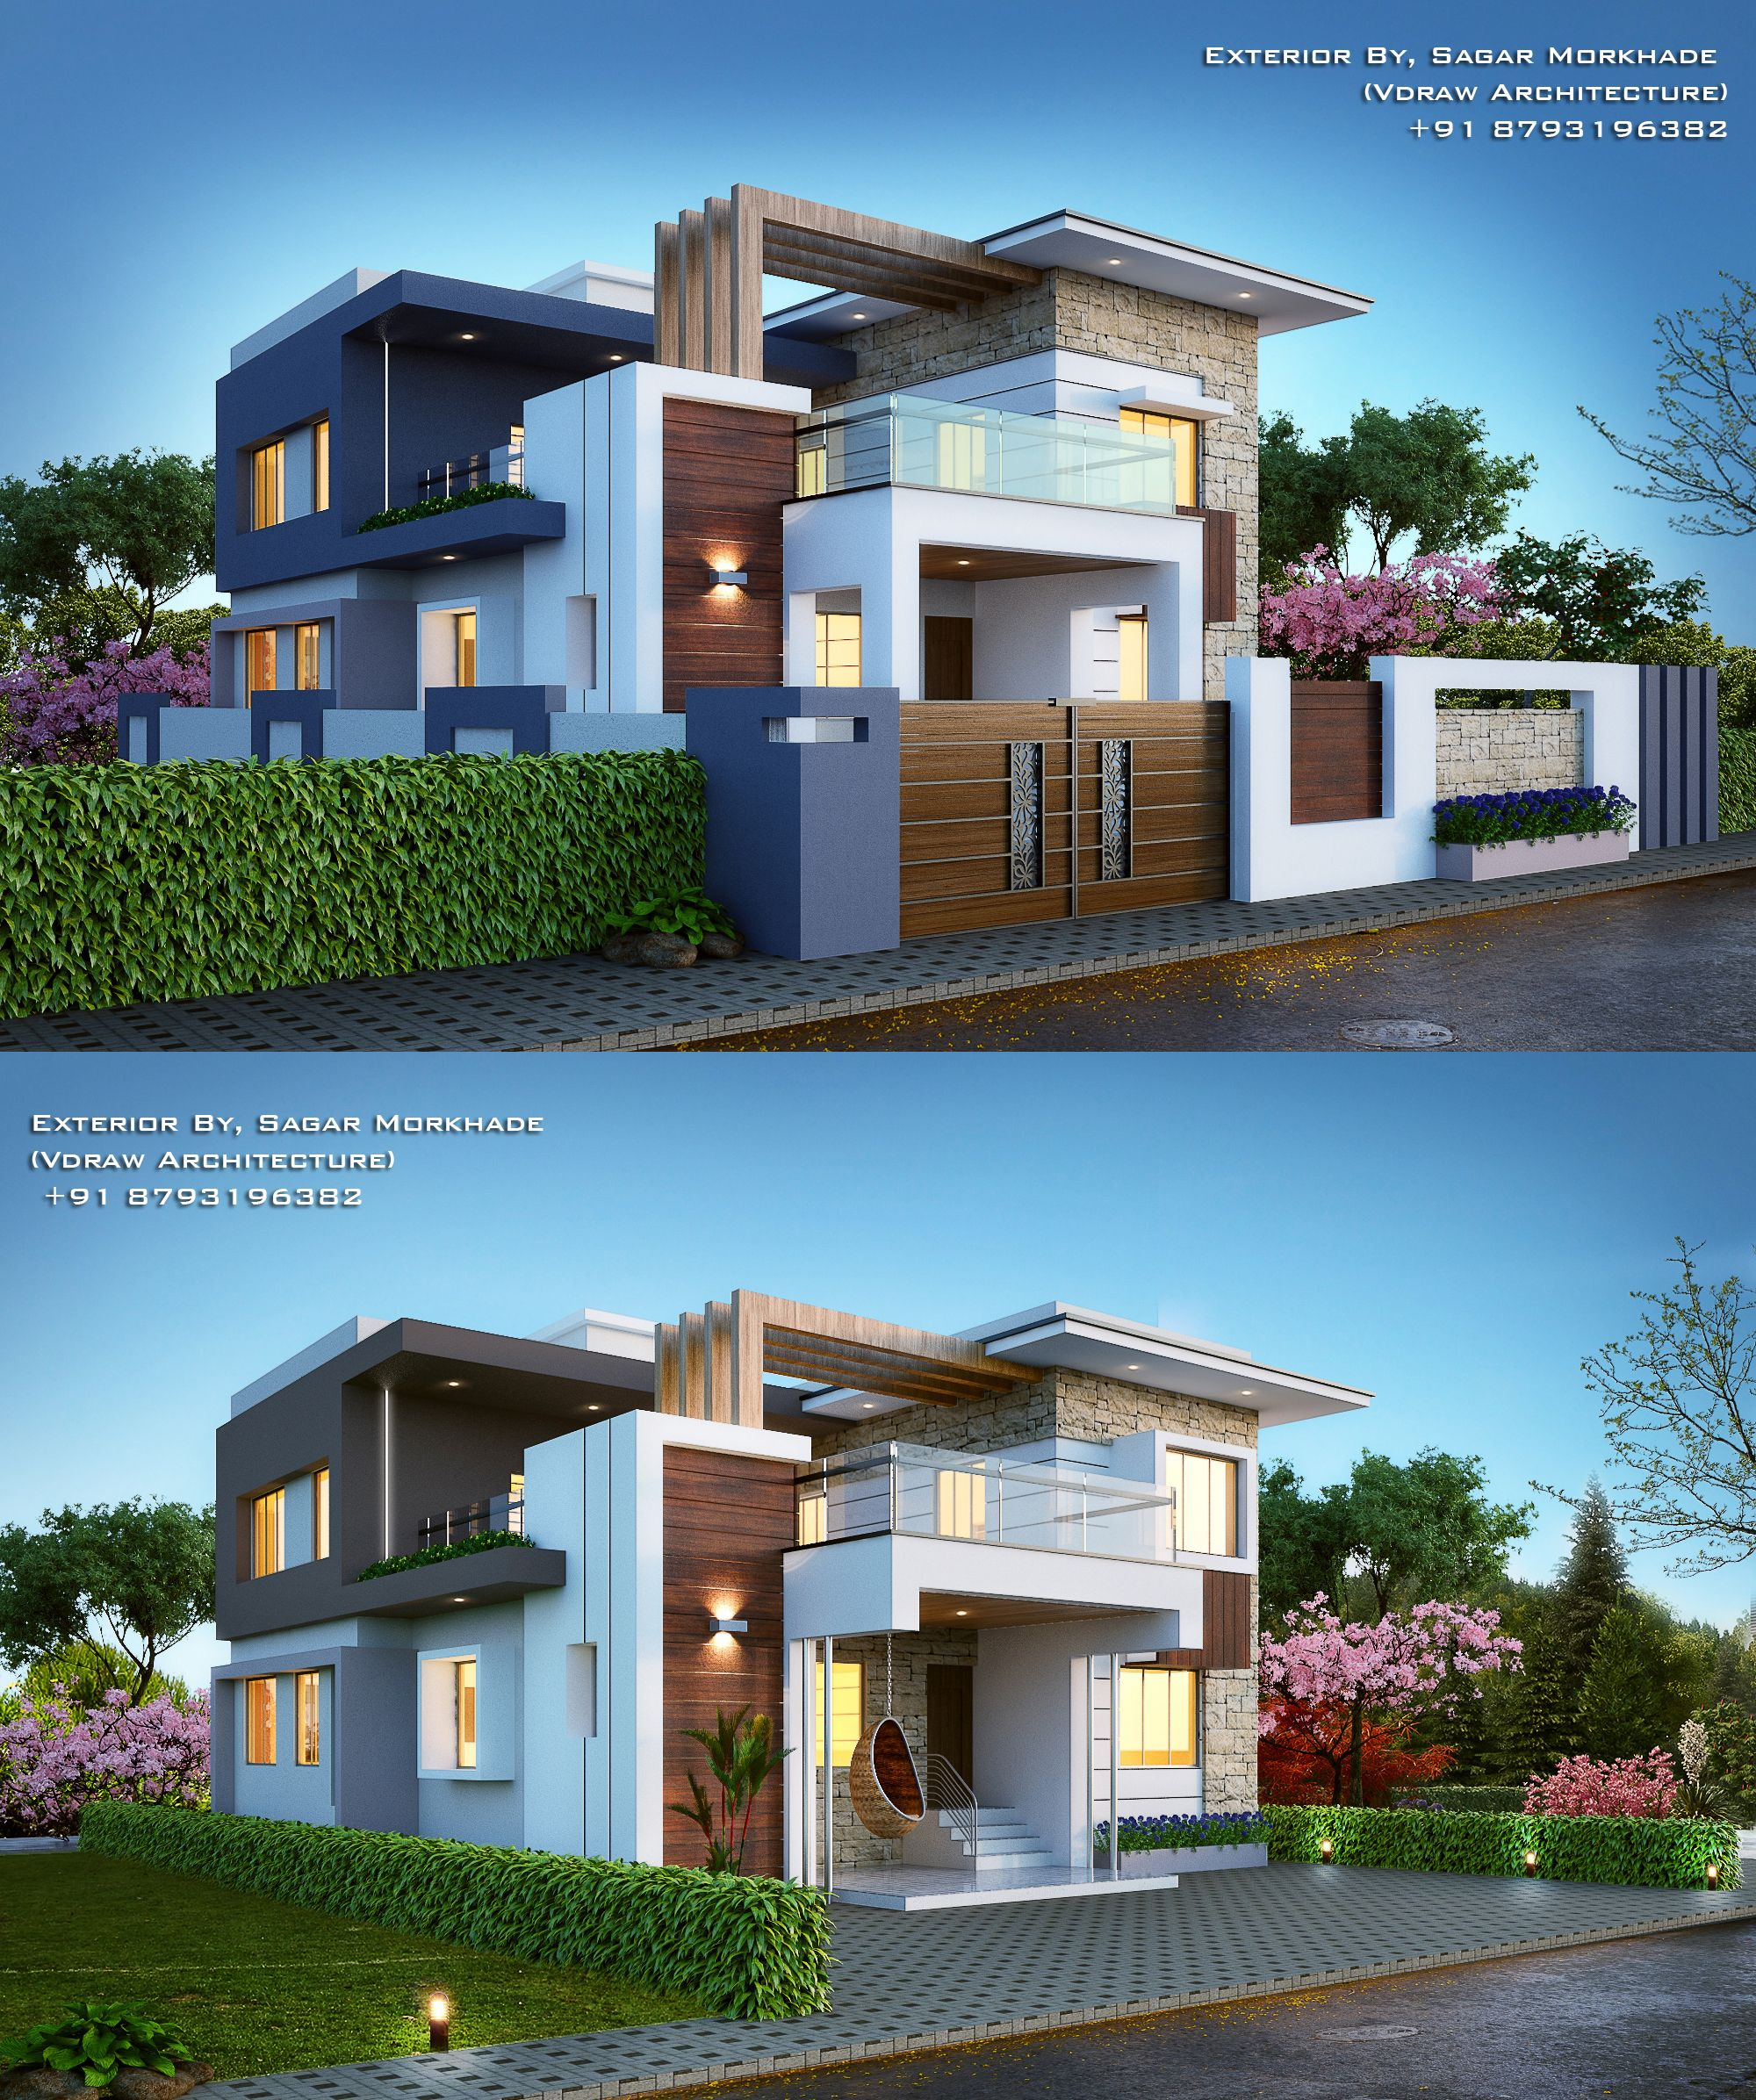 Modern house bungalow exterior by sagar morkhade vdraw architecture also awesome contemporary style sq ft home in elevation rh pinterest